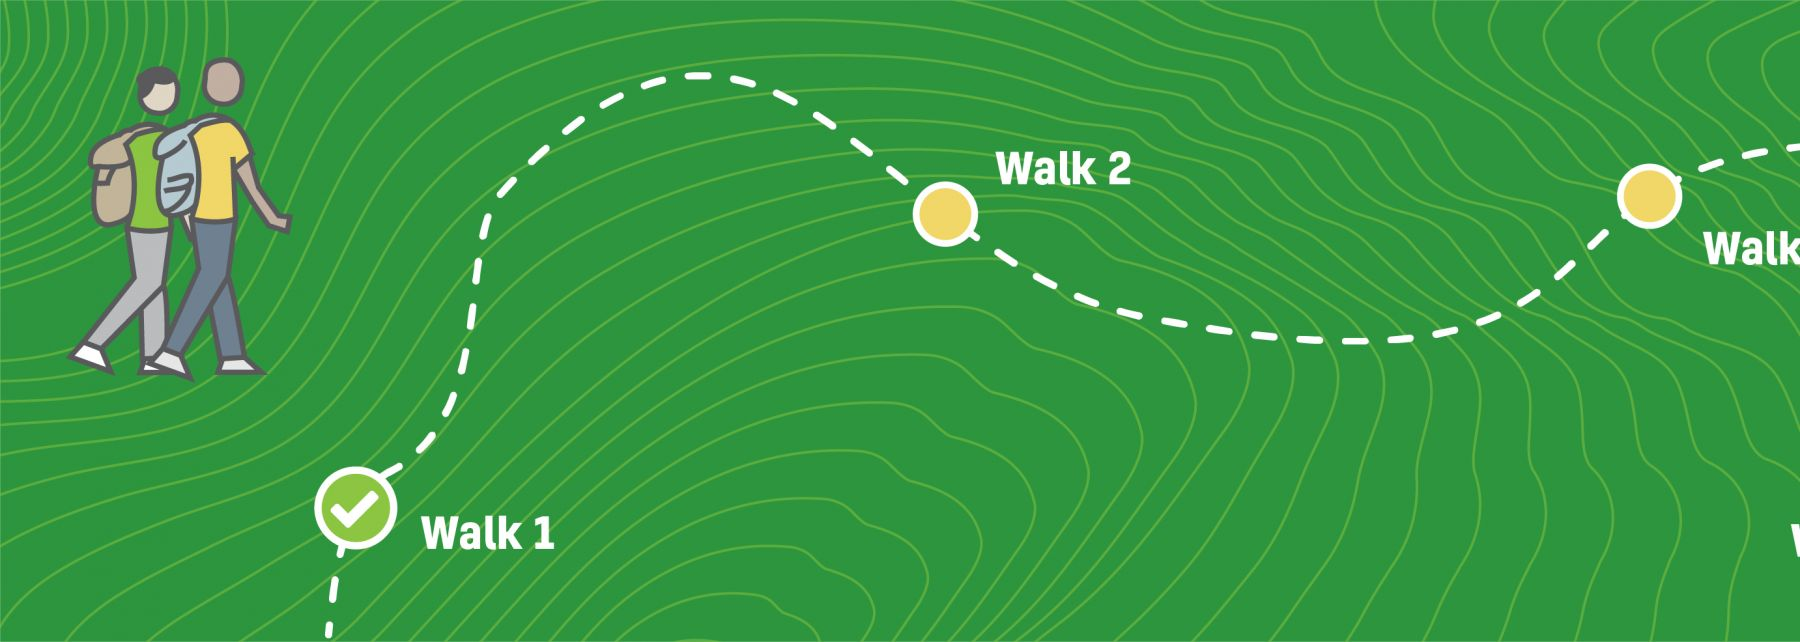 Baca fundraising charity walk first walk complete